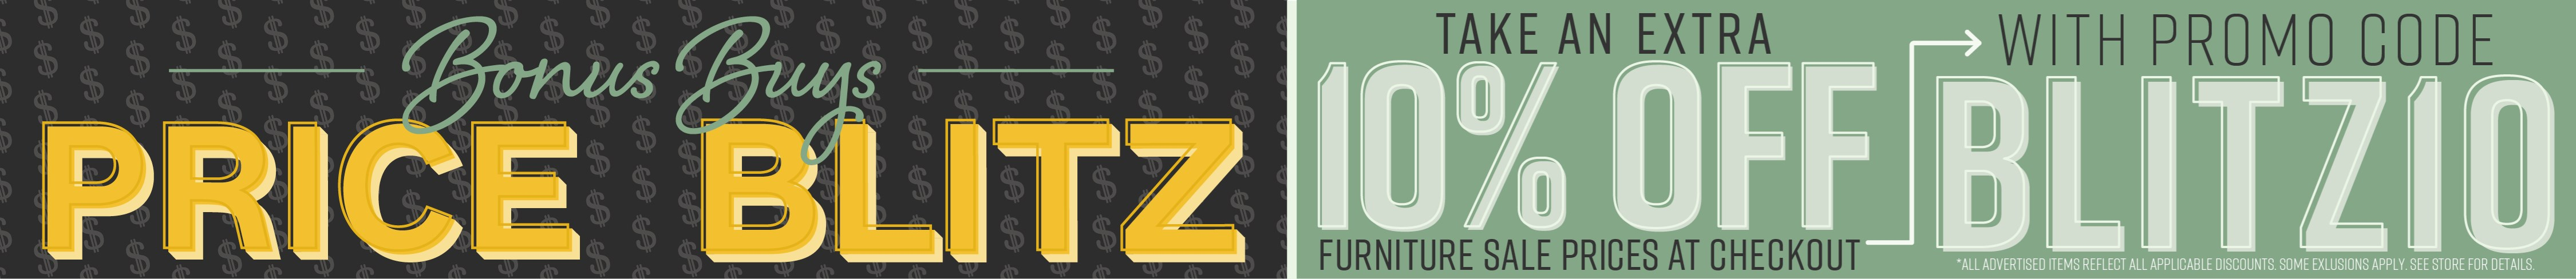 Furniture & ApplianceMart Bonus Buys Price Blitz